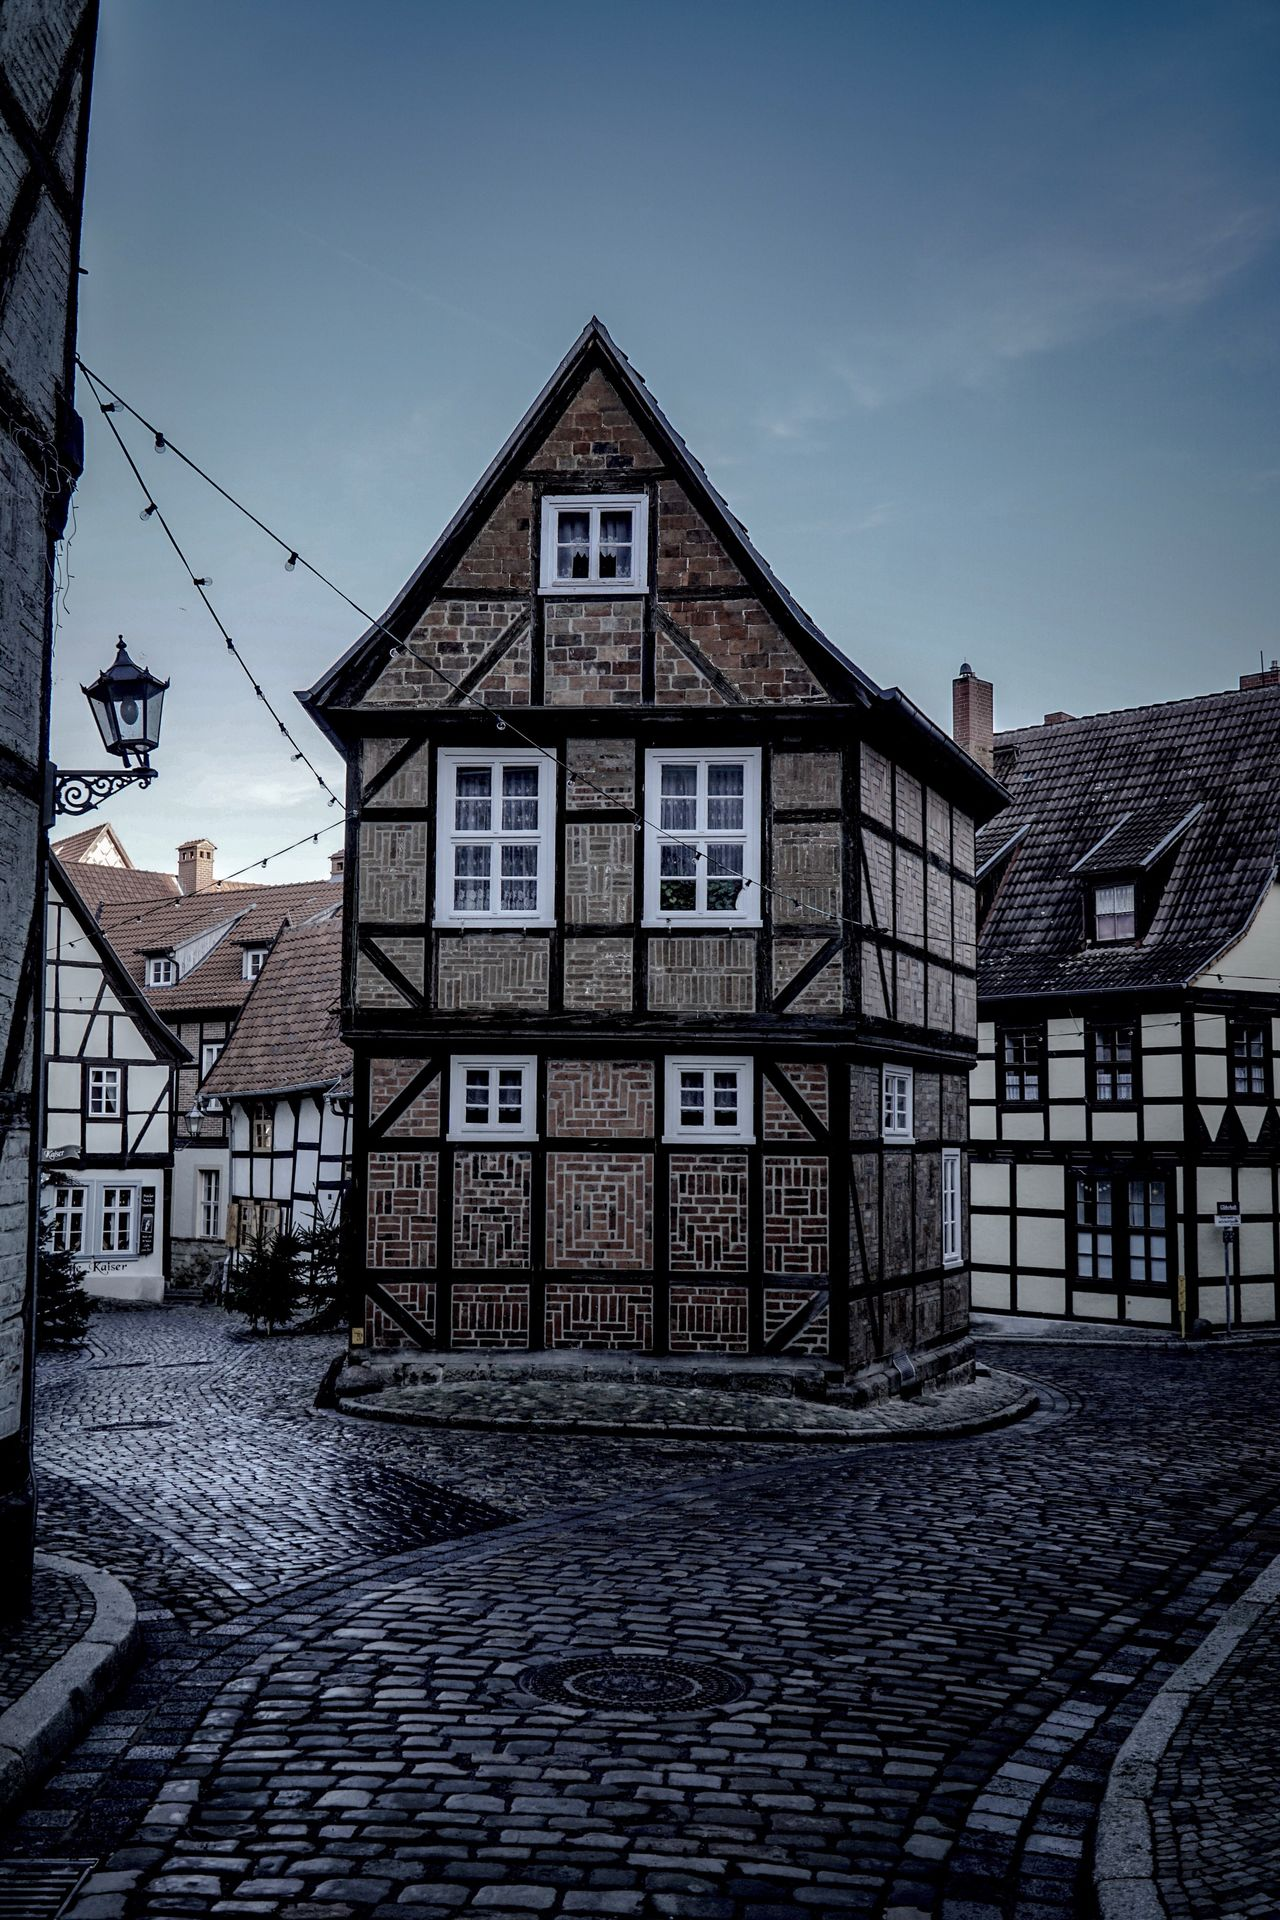 Architecture Building Exterior Architecture Built Structure Sky House Outdoors No People Day Quedlinburg